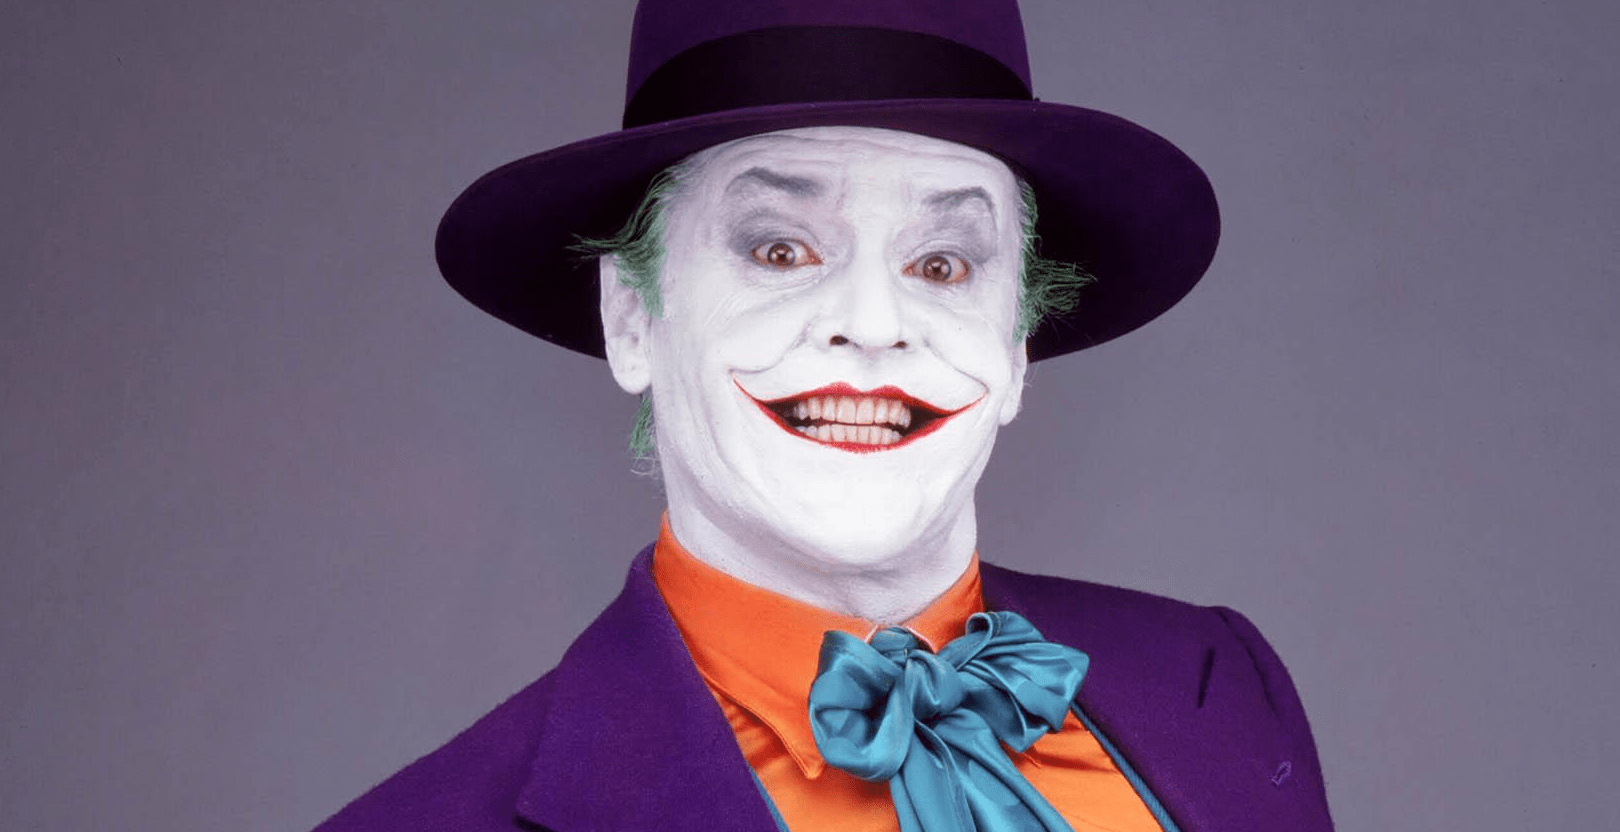 Are Warner Bros. Looking At Leonardo DiCaprio To Play The Joker?